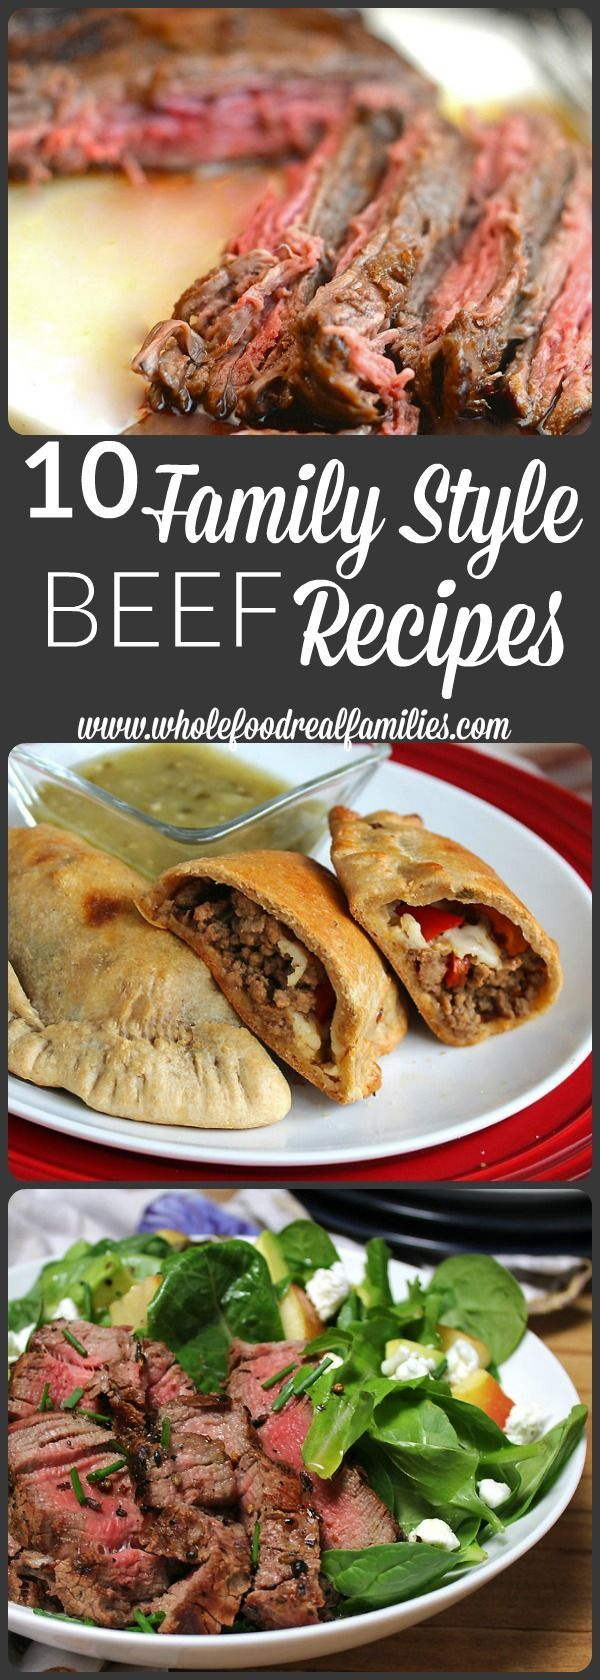 10 Family Style Beef Recipes that will make your mouth water. There is a recipe here for everyone, whether you are looking for a great burger, steak or ribs, these recipes will have your mouth watering and your family asking from more. @beeffordinner